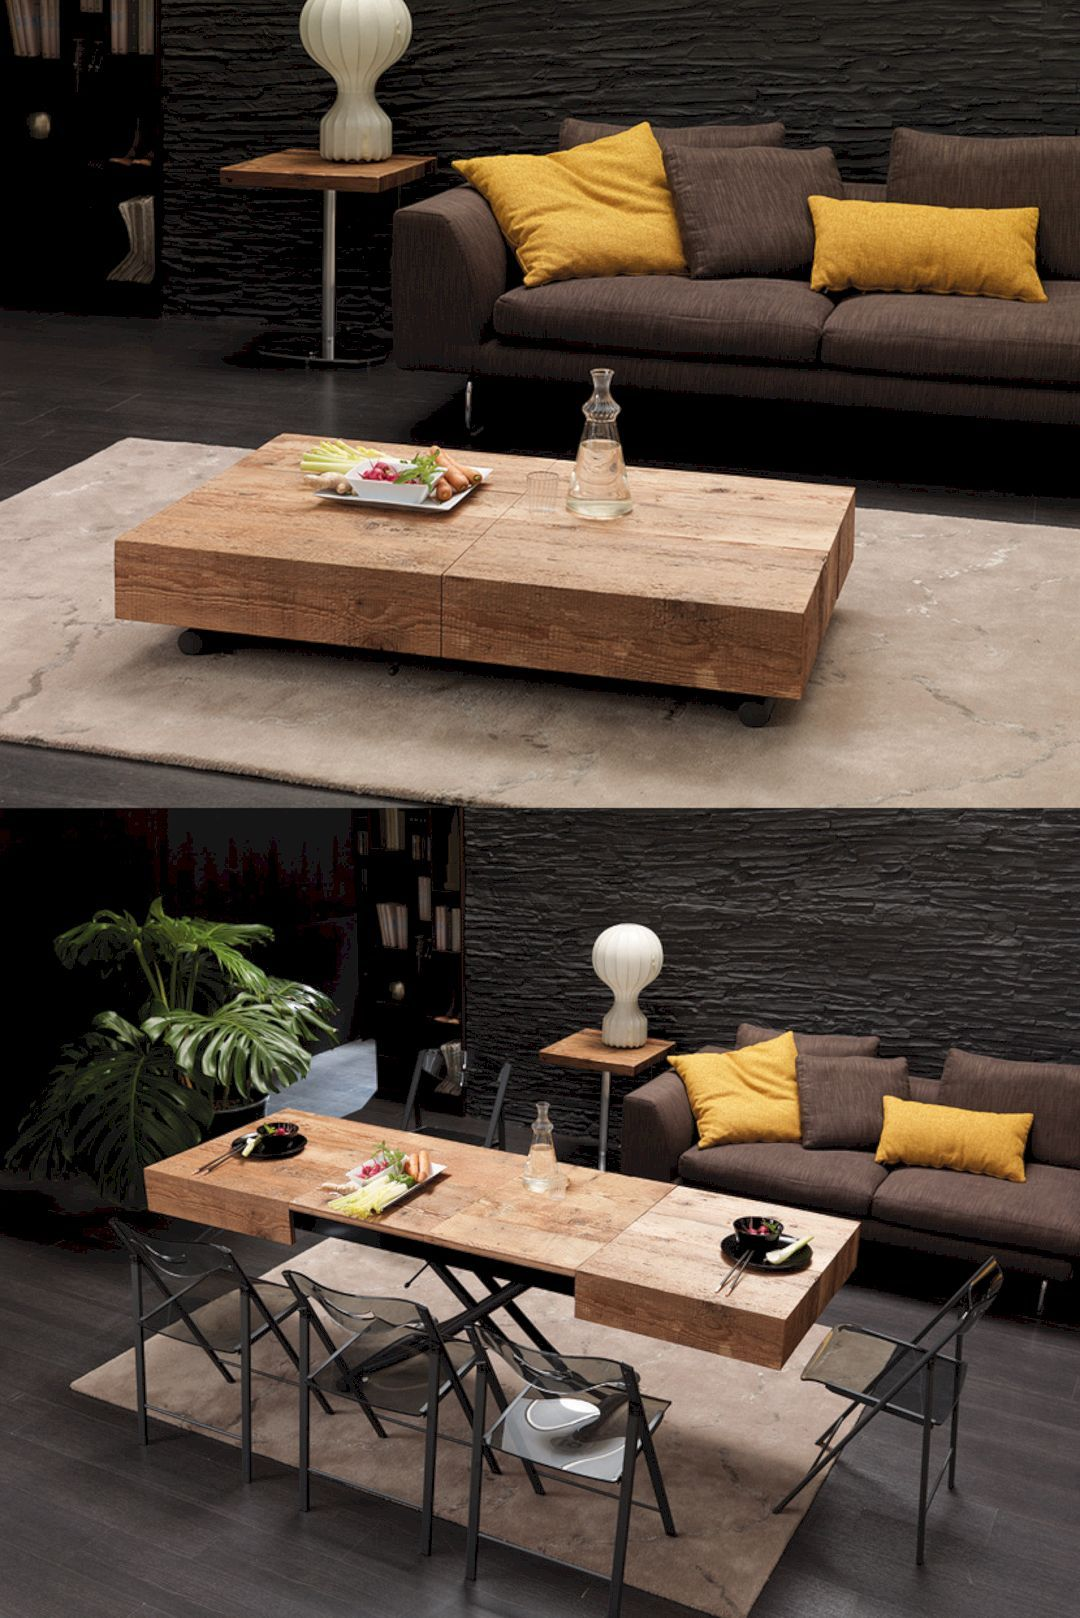 Small Space Convertible Furniture: Space Saving Table Design For A Small Room